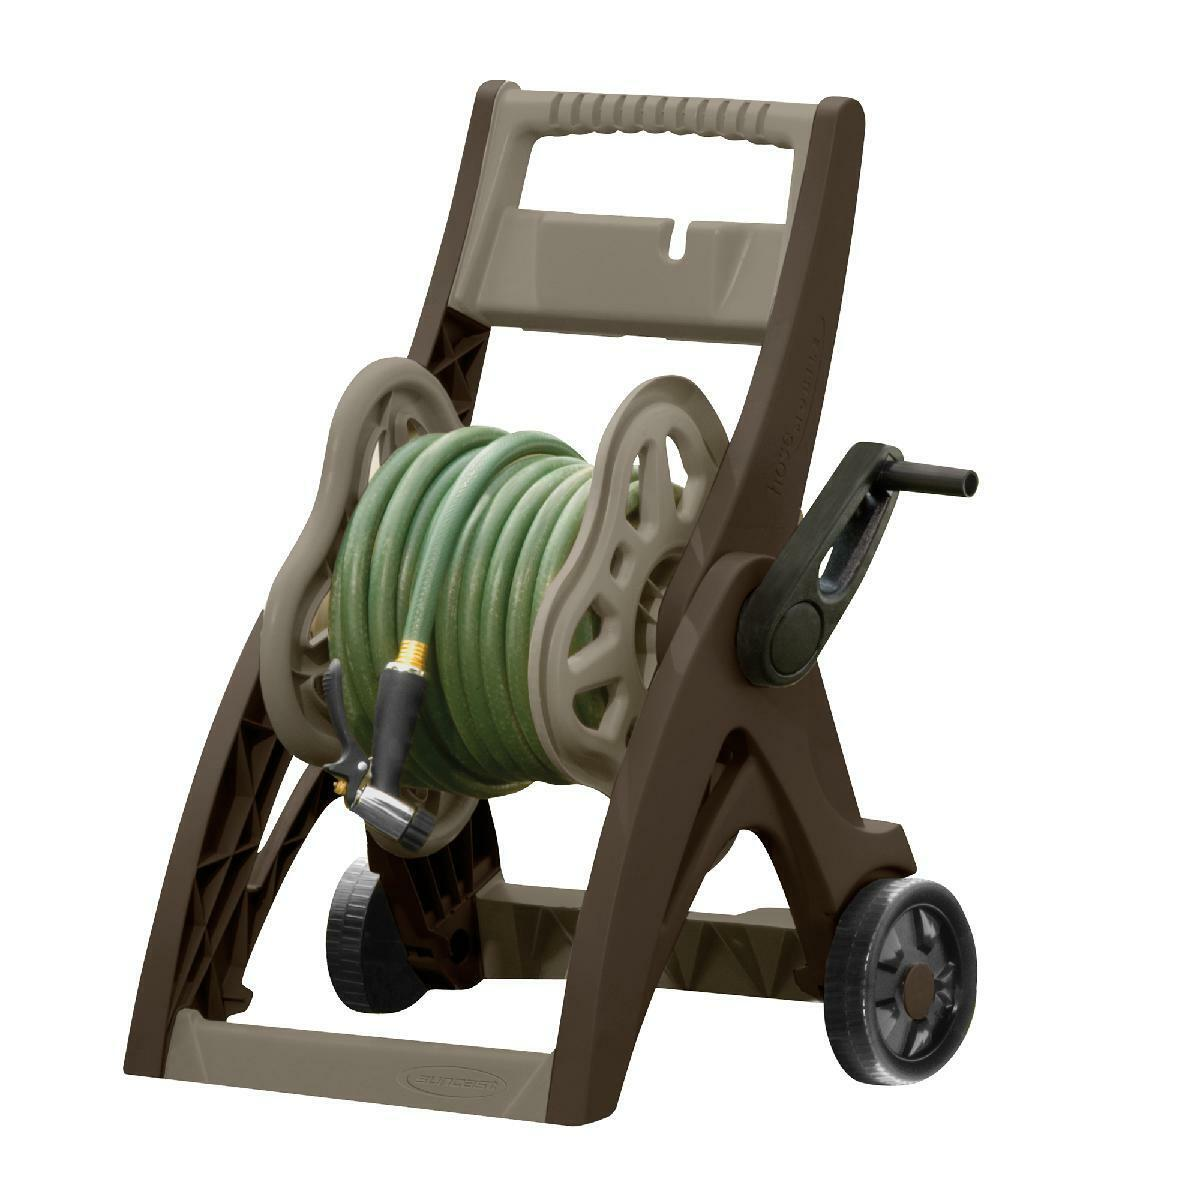 175 ft. Hose Reel Cart Water Garden Wash Car Outdoor High Quality Resin Taupe